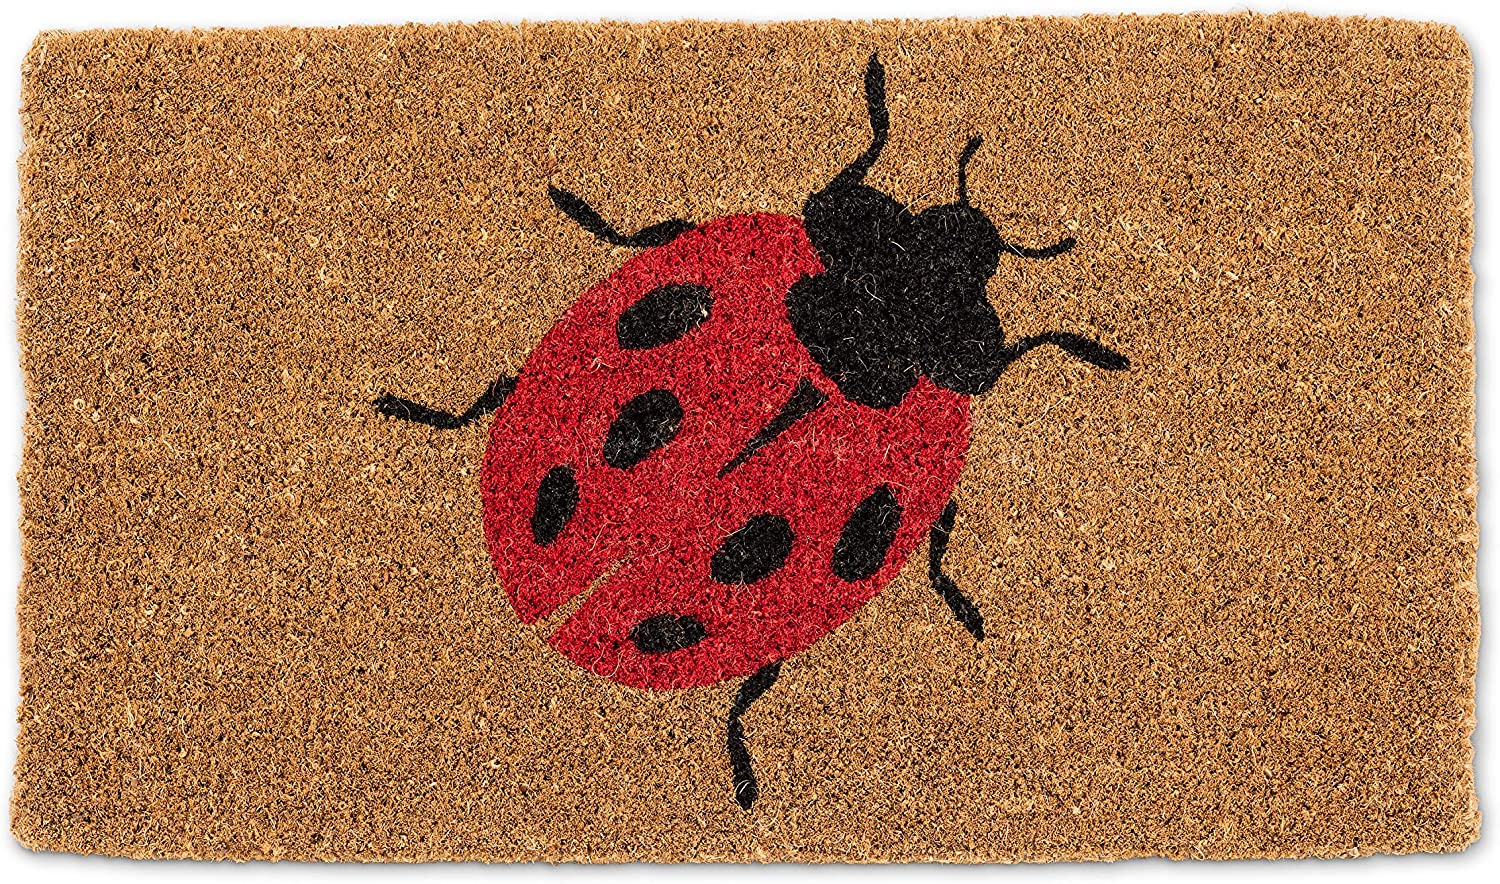 Abbott Collection 1235-FWD-BUG New color Red L New York Mall Doormat-18X30 Ladybug